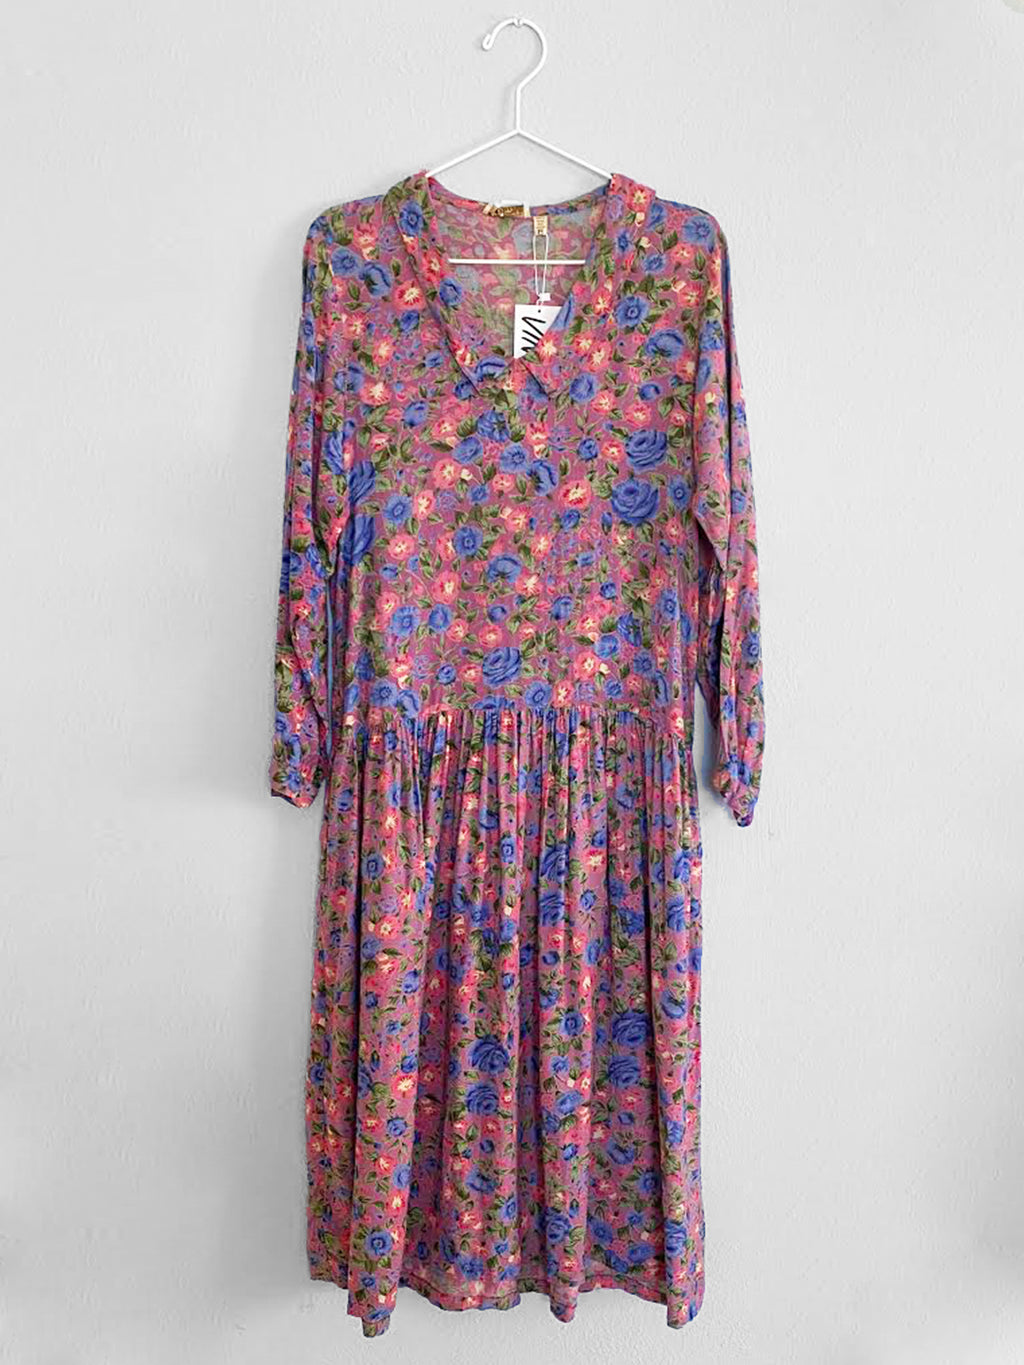 IGWT Vintage - Collared Dress / Floral